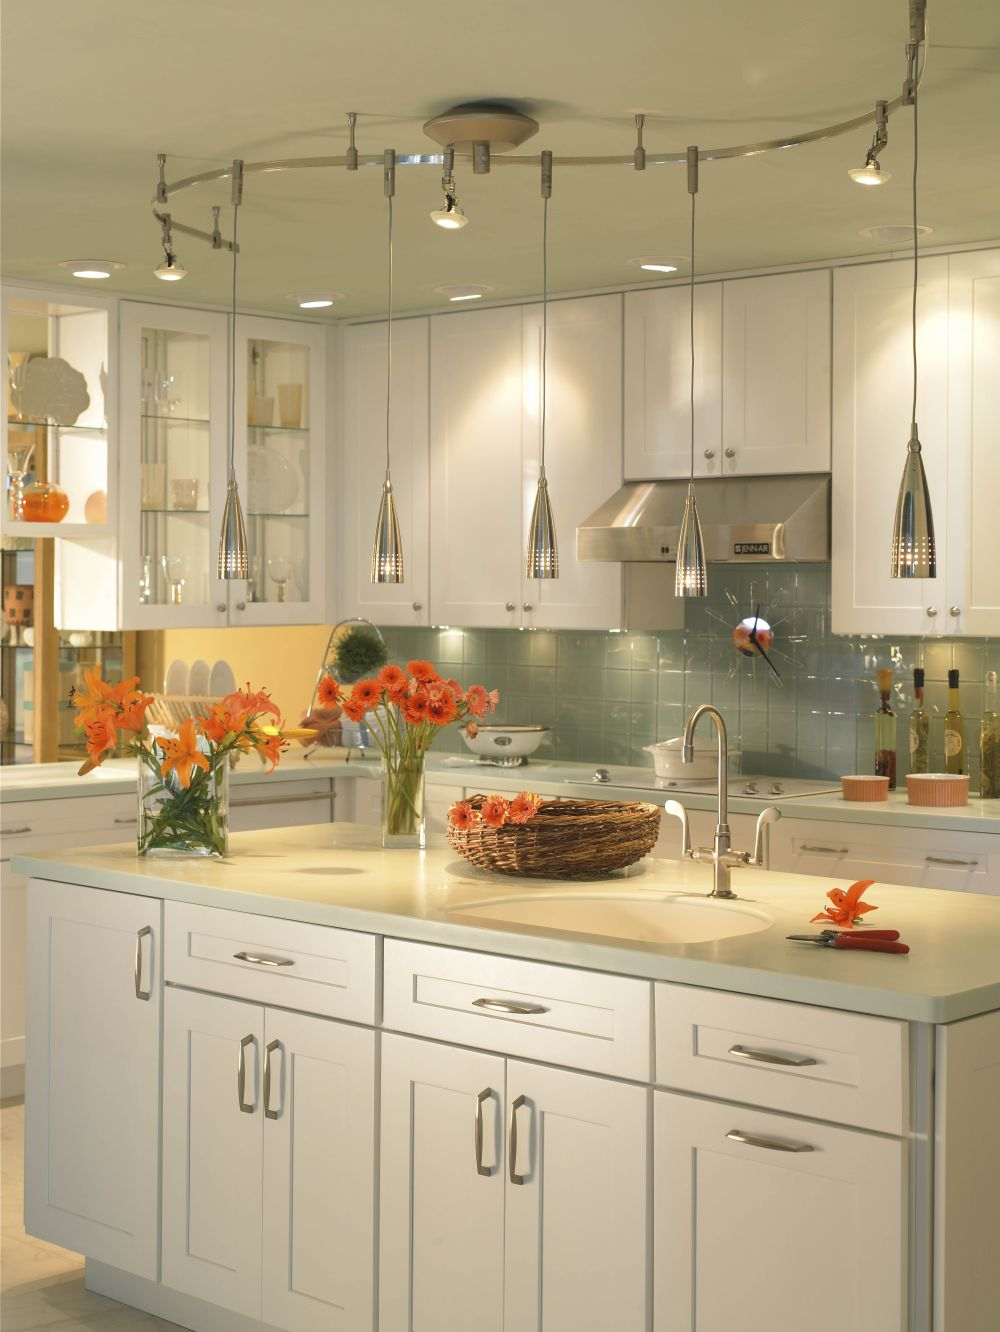 illuma-flex track lighting by progress lighting track lighting for kitchen shows how to shine the vibe perfectly